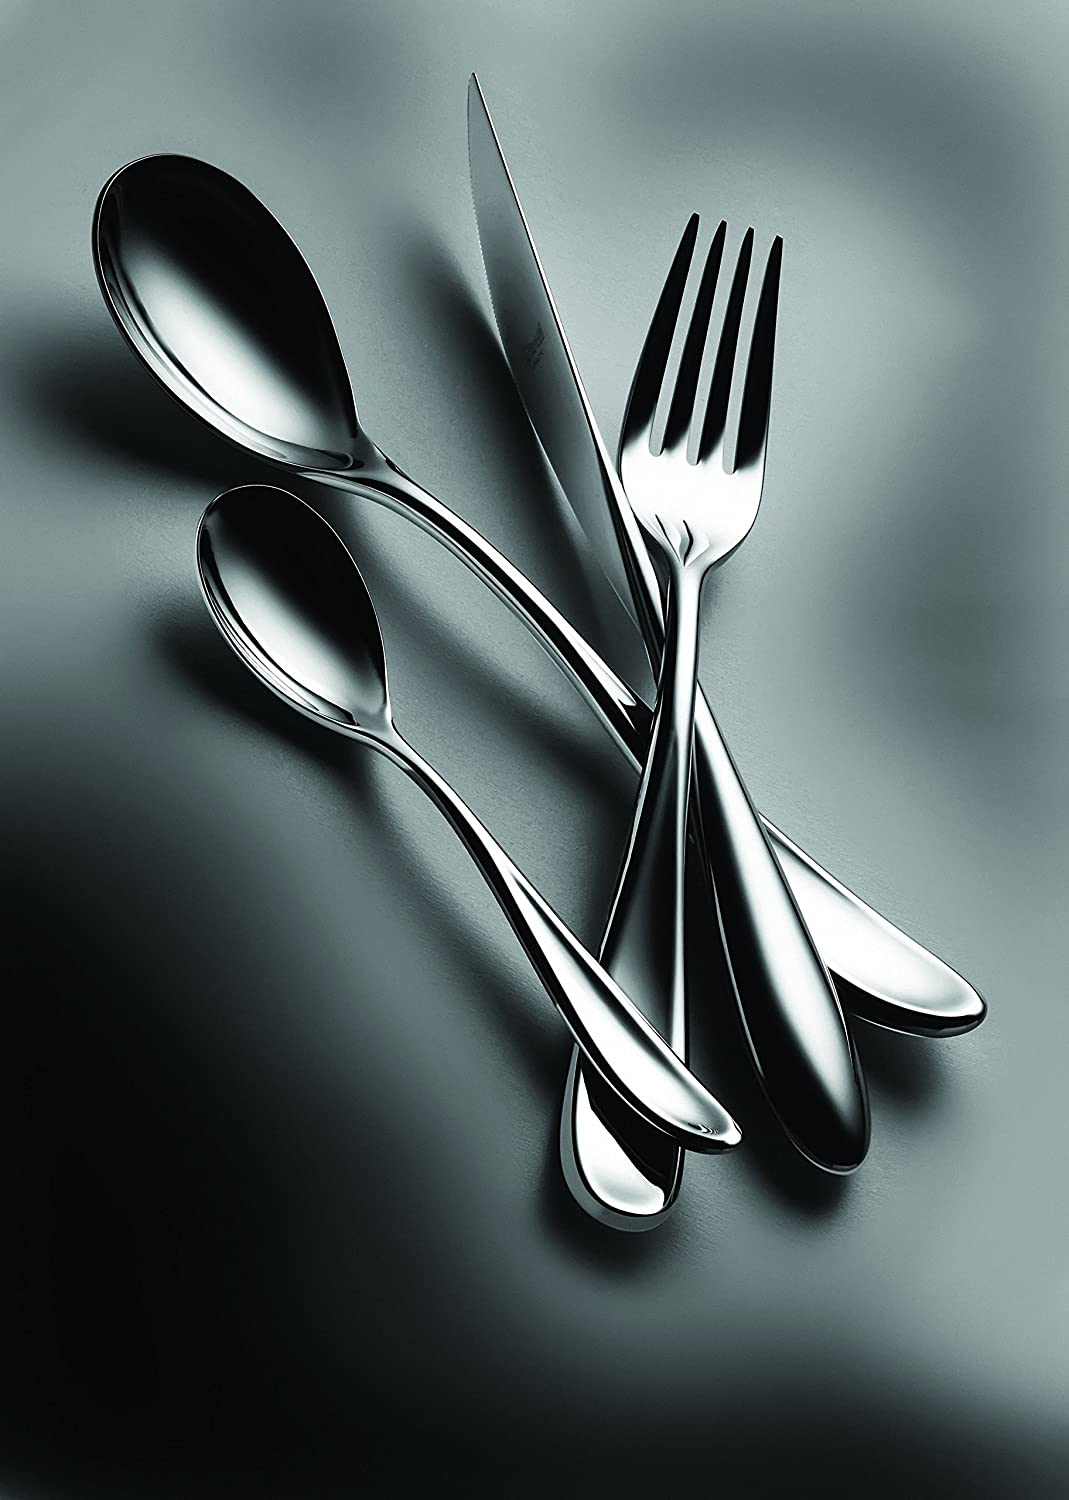 Amazon.com: Mepra Forma 5 Piece Place Setting, Stainless Steel ...